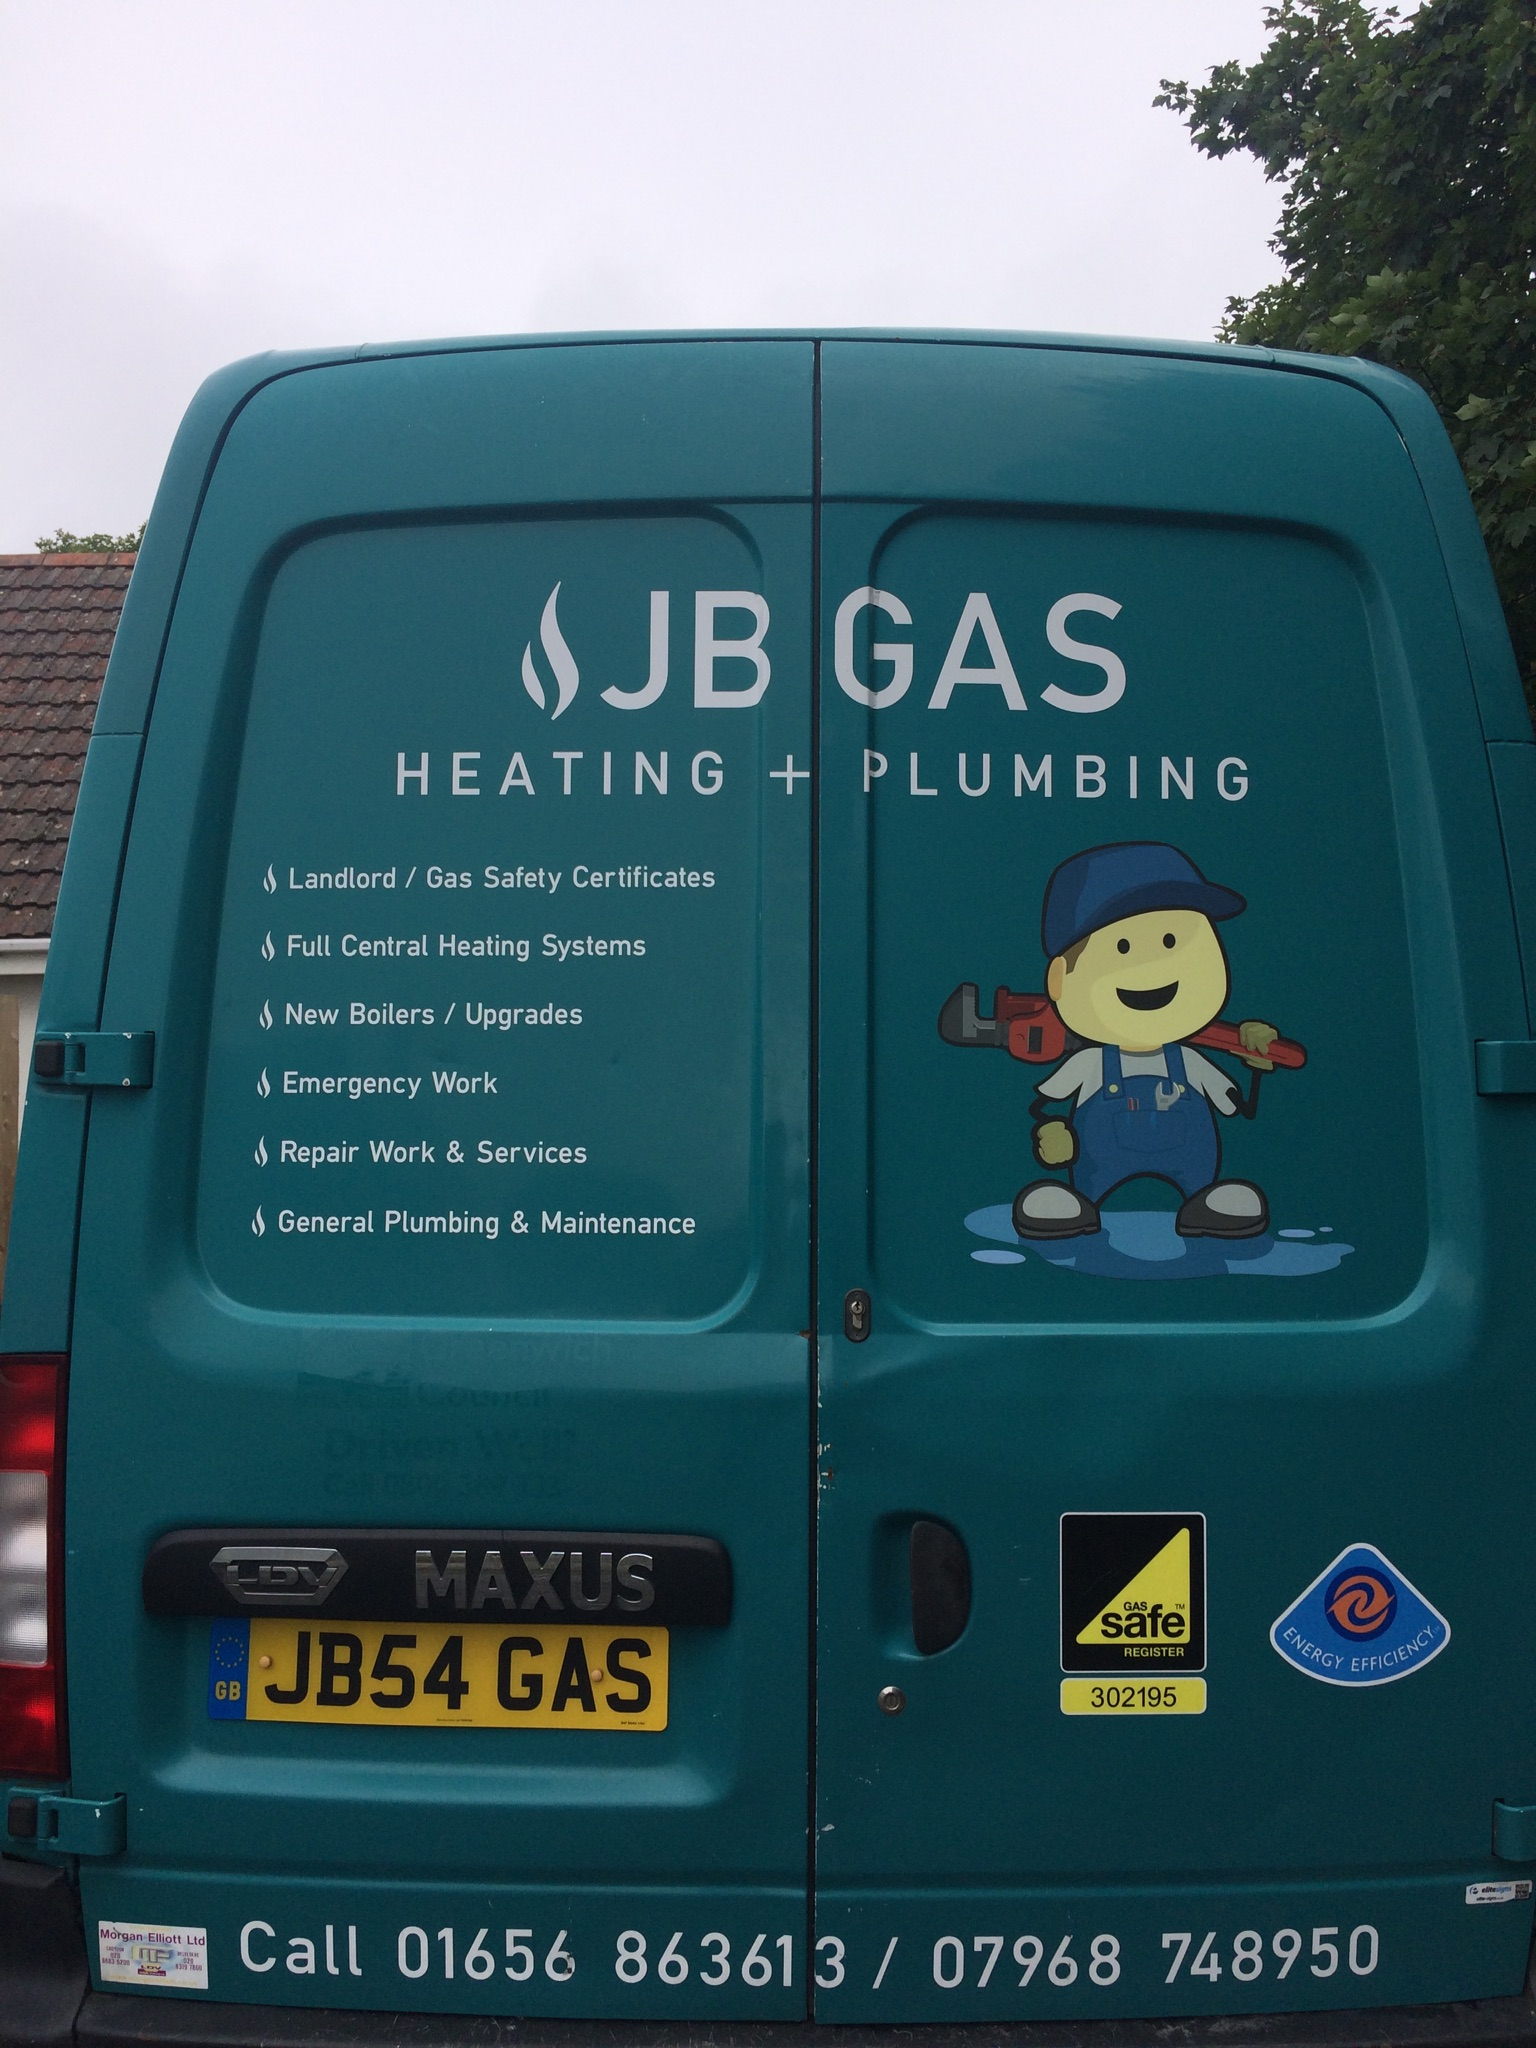 JB GAS - Mr Central Heating Installers